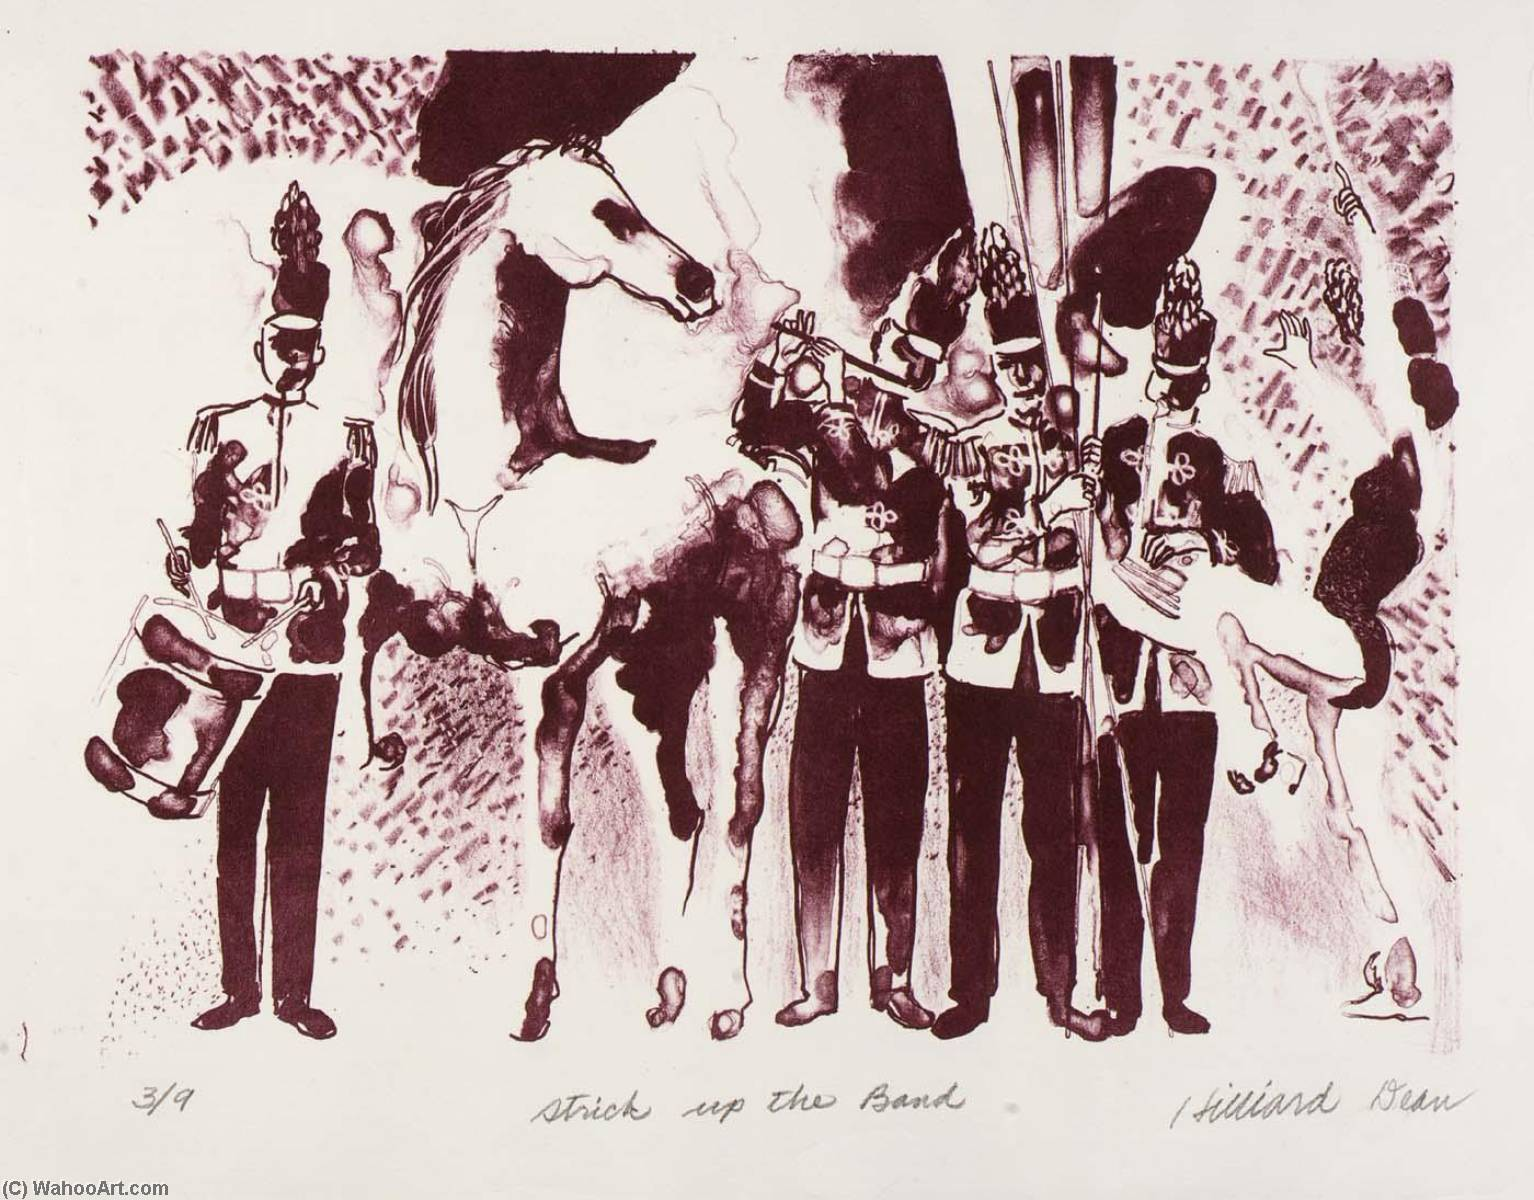 Order Oil Painting : Strick up the Band, 1968 by Hilliard Dean | WahooArt.com